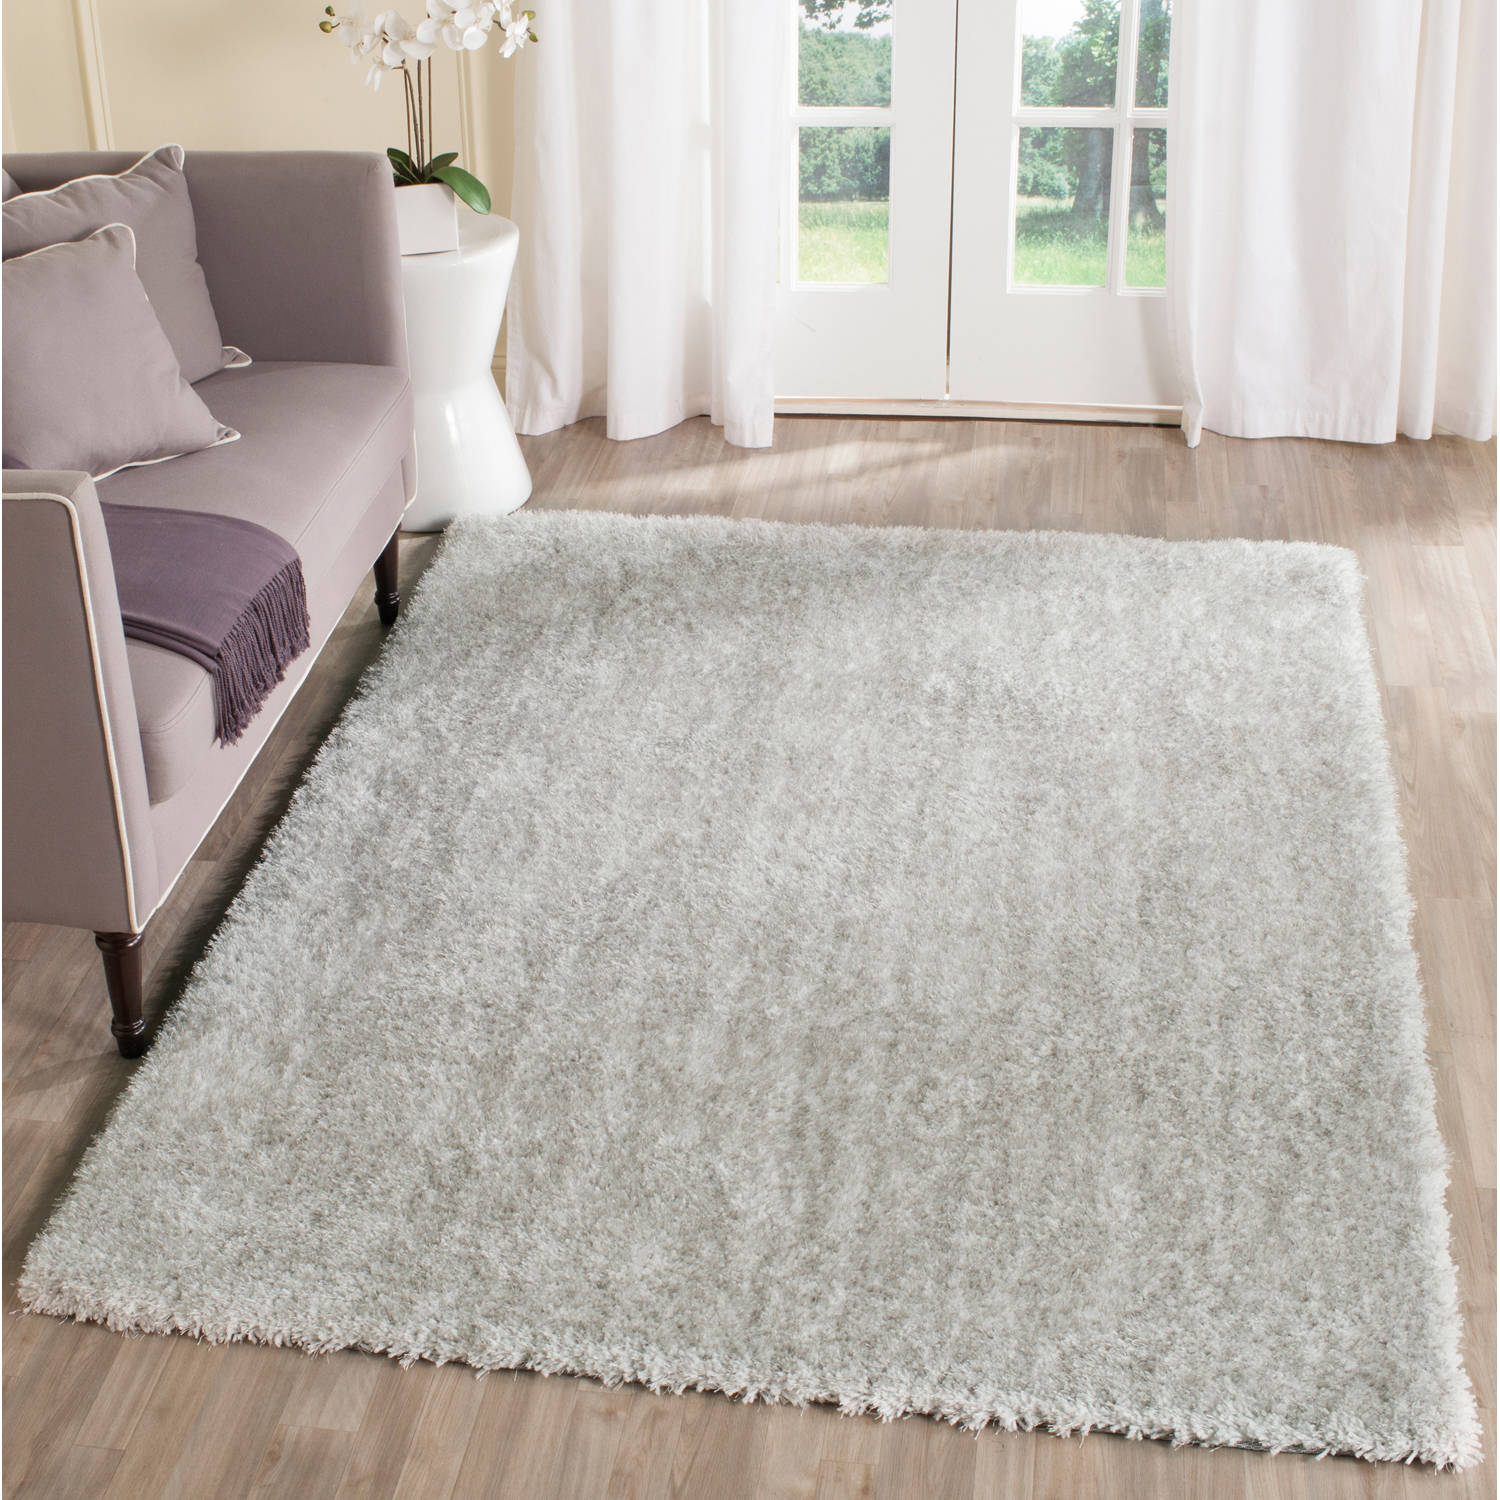 Better Homes and Gardens Plush Eyelash Shag Area Rug